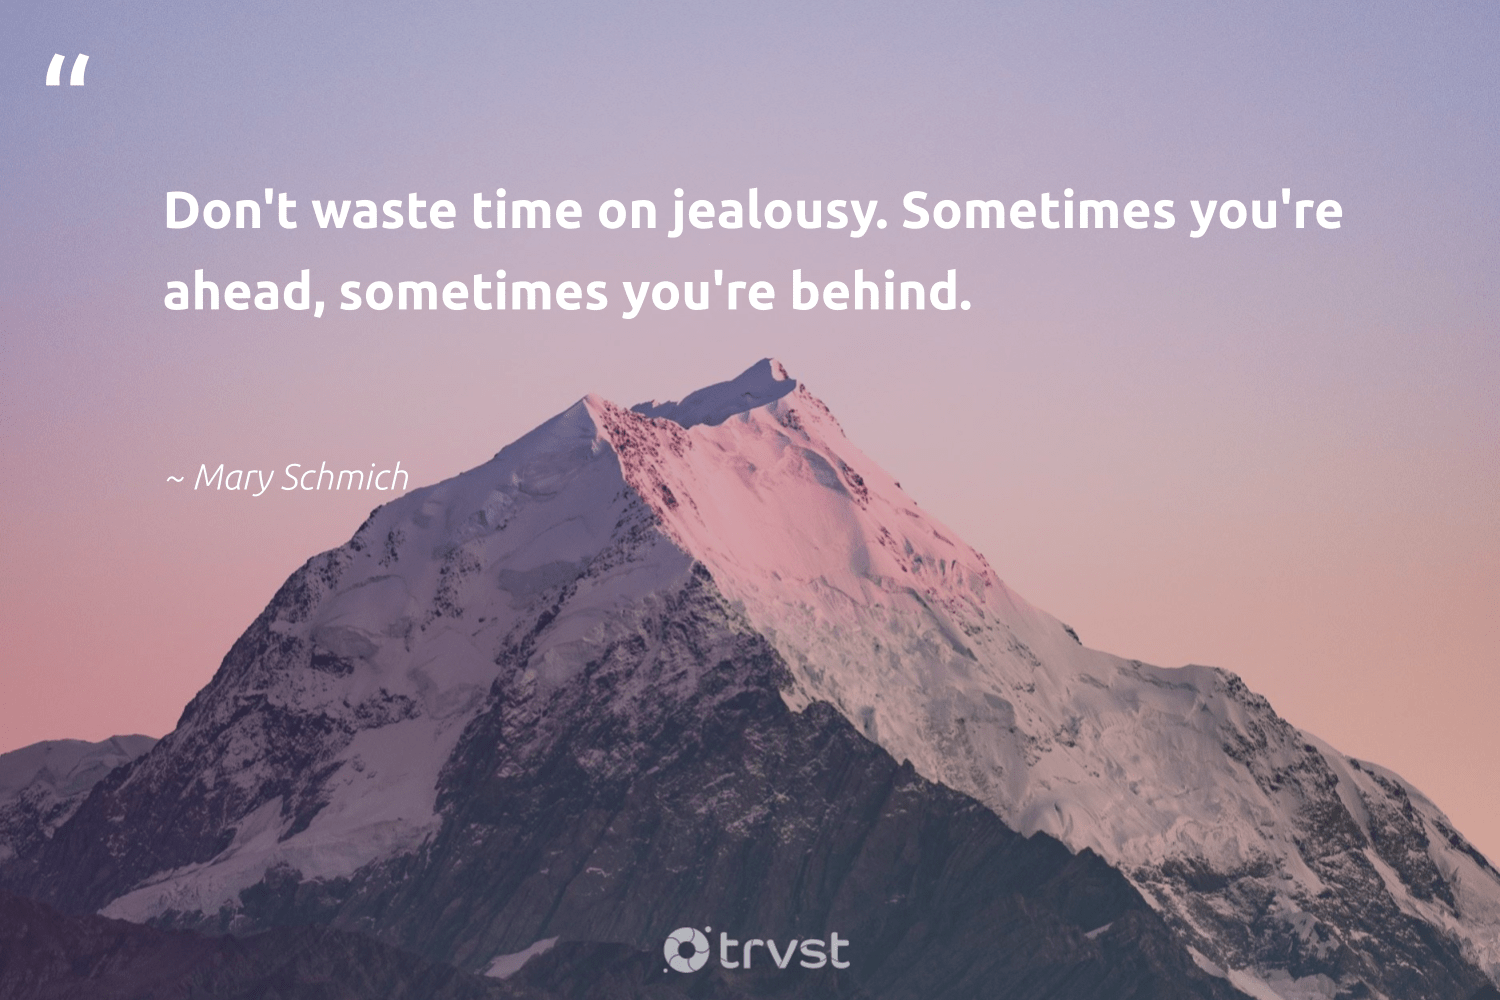 """Don't waste time on jealousy. Sometimes you're ahead, sometimes you're behind.""  - Mary Schmich #trvst #quotes #waste #begreat #takeaction #nevergiveup #changetheworld #mindset #ecoconscious #togetherwecan #beinspired #health"